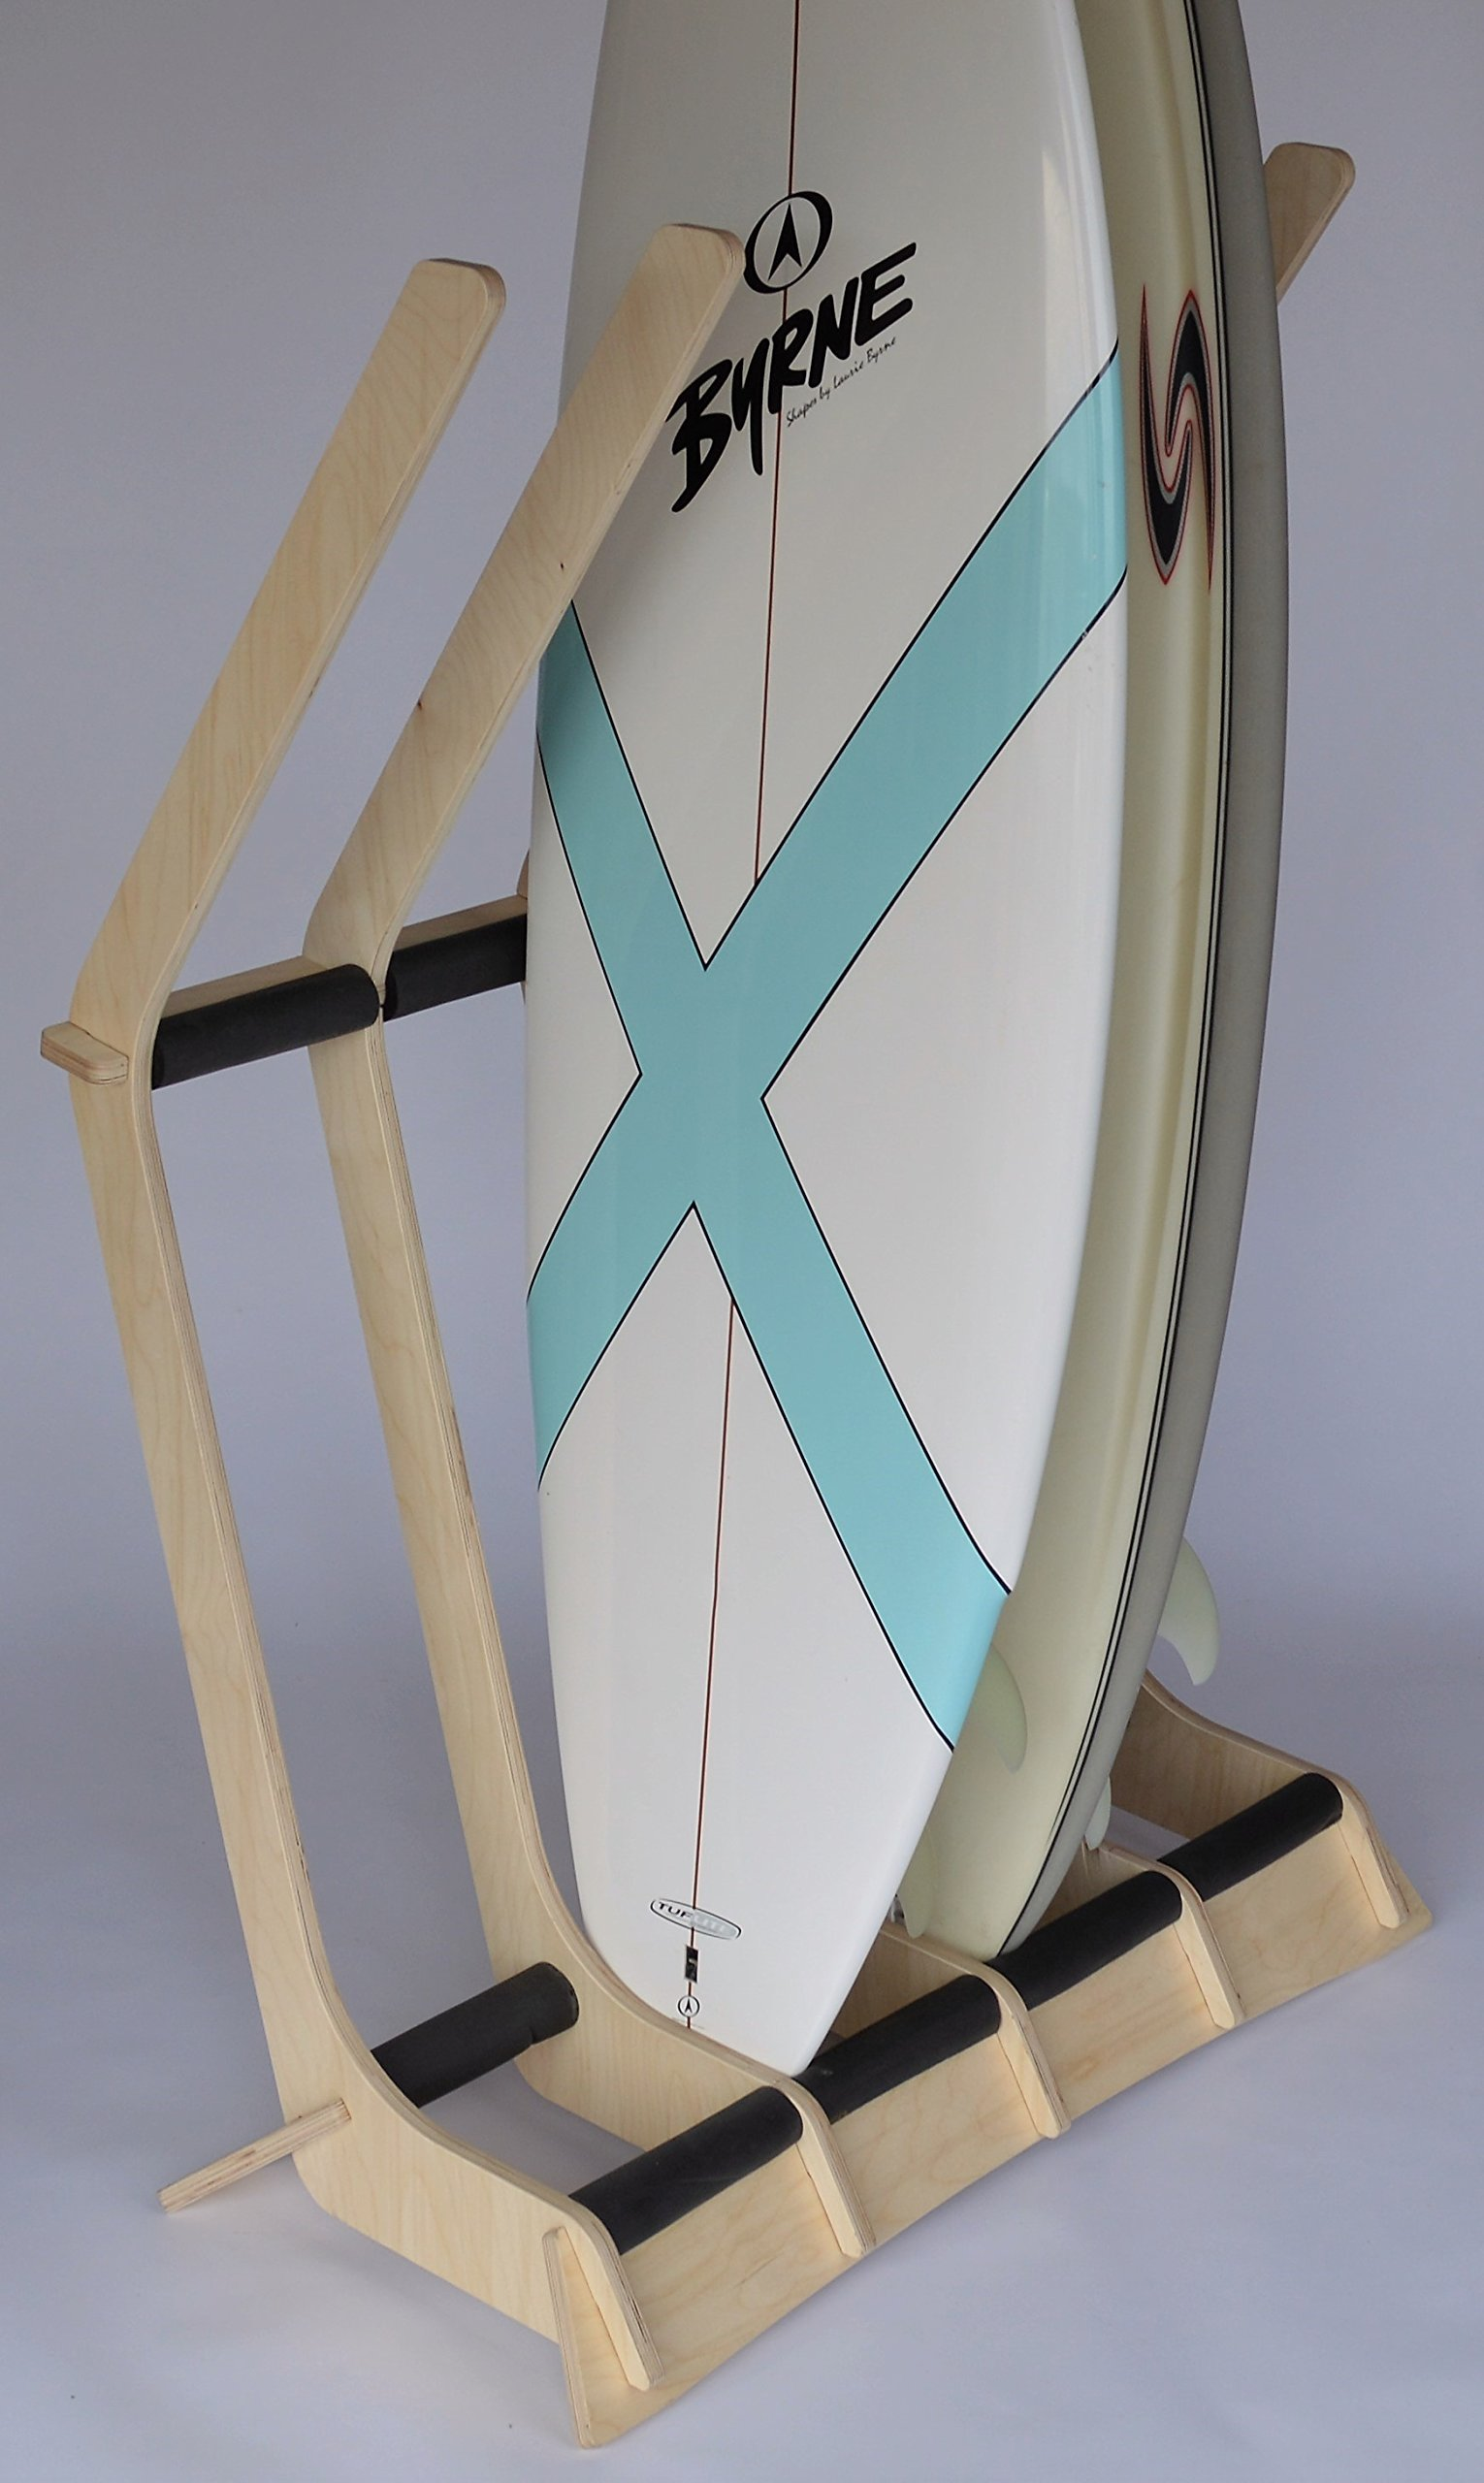 The Lineup Surfboard Rack